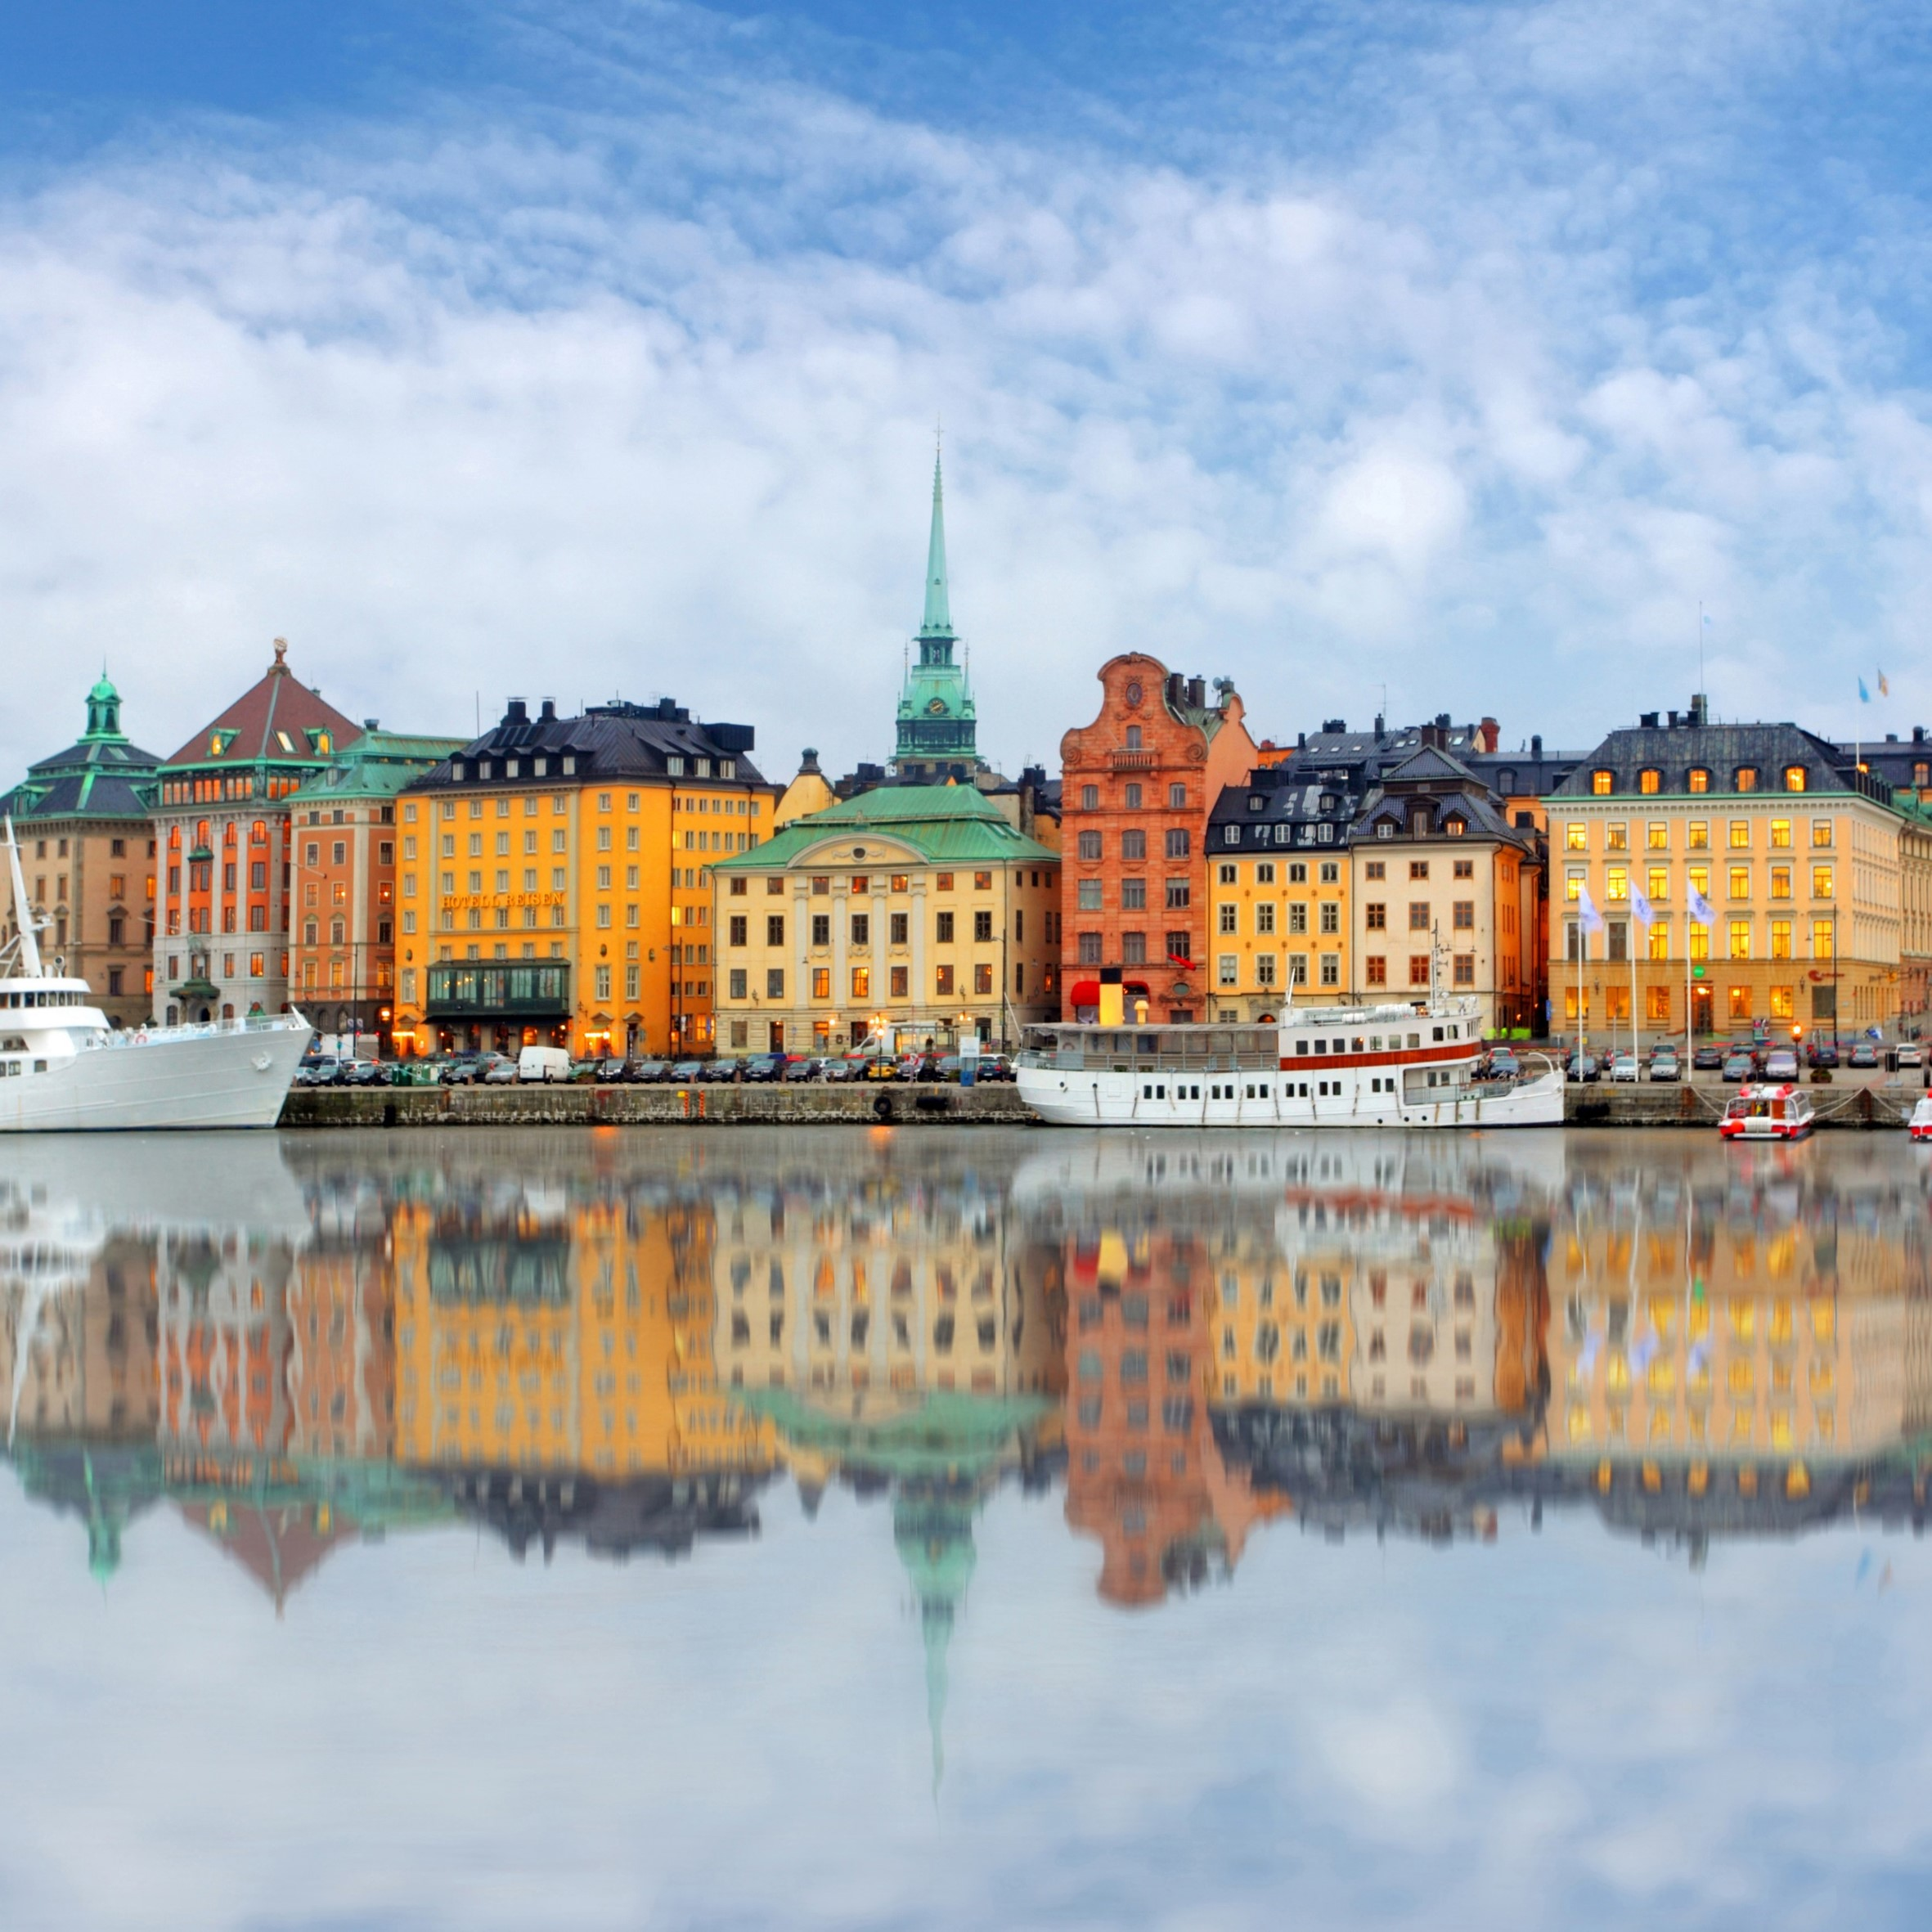 sweden 1 - UK Market Breakfast Briefing: Millennials and wine – should we be worried or excited?